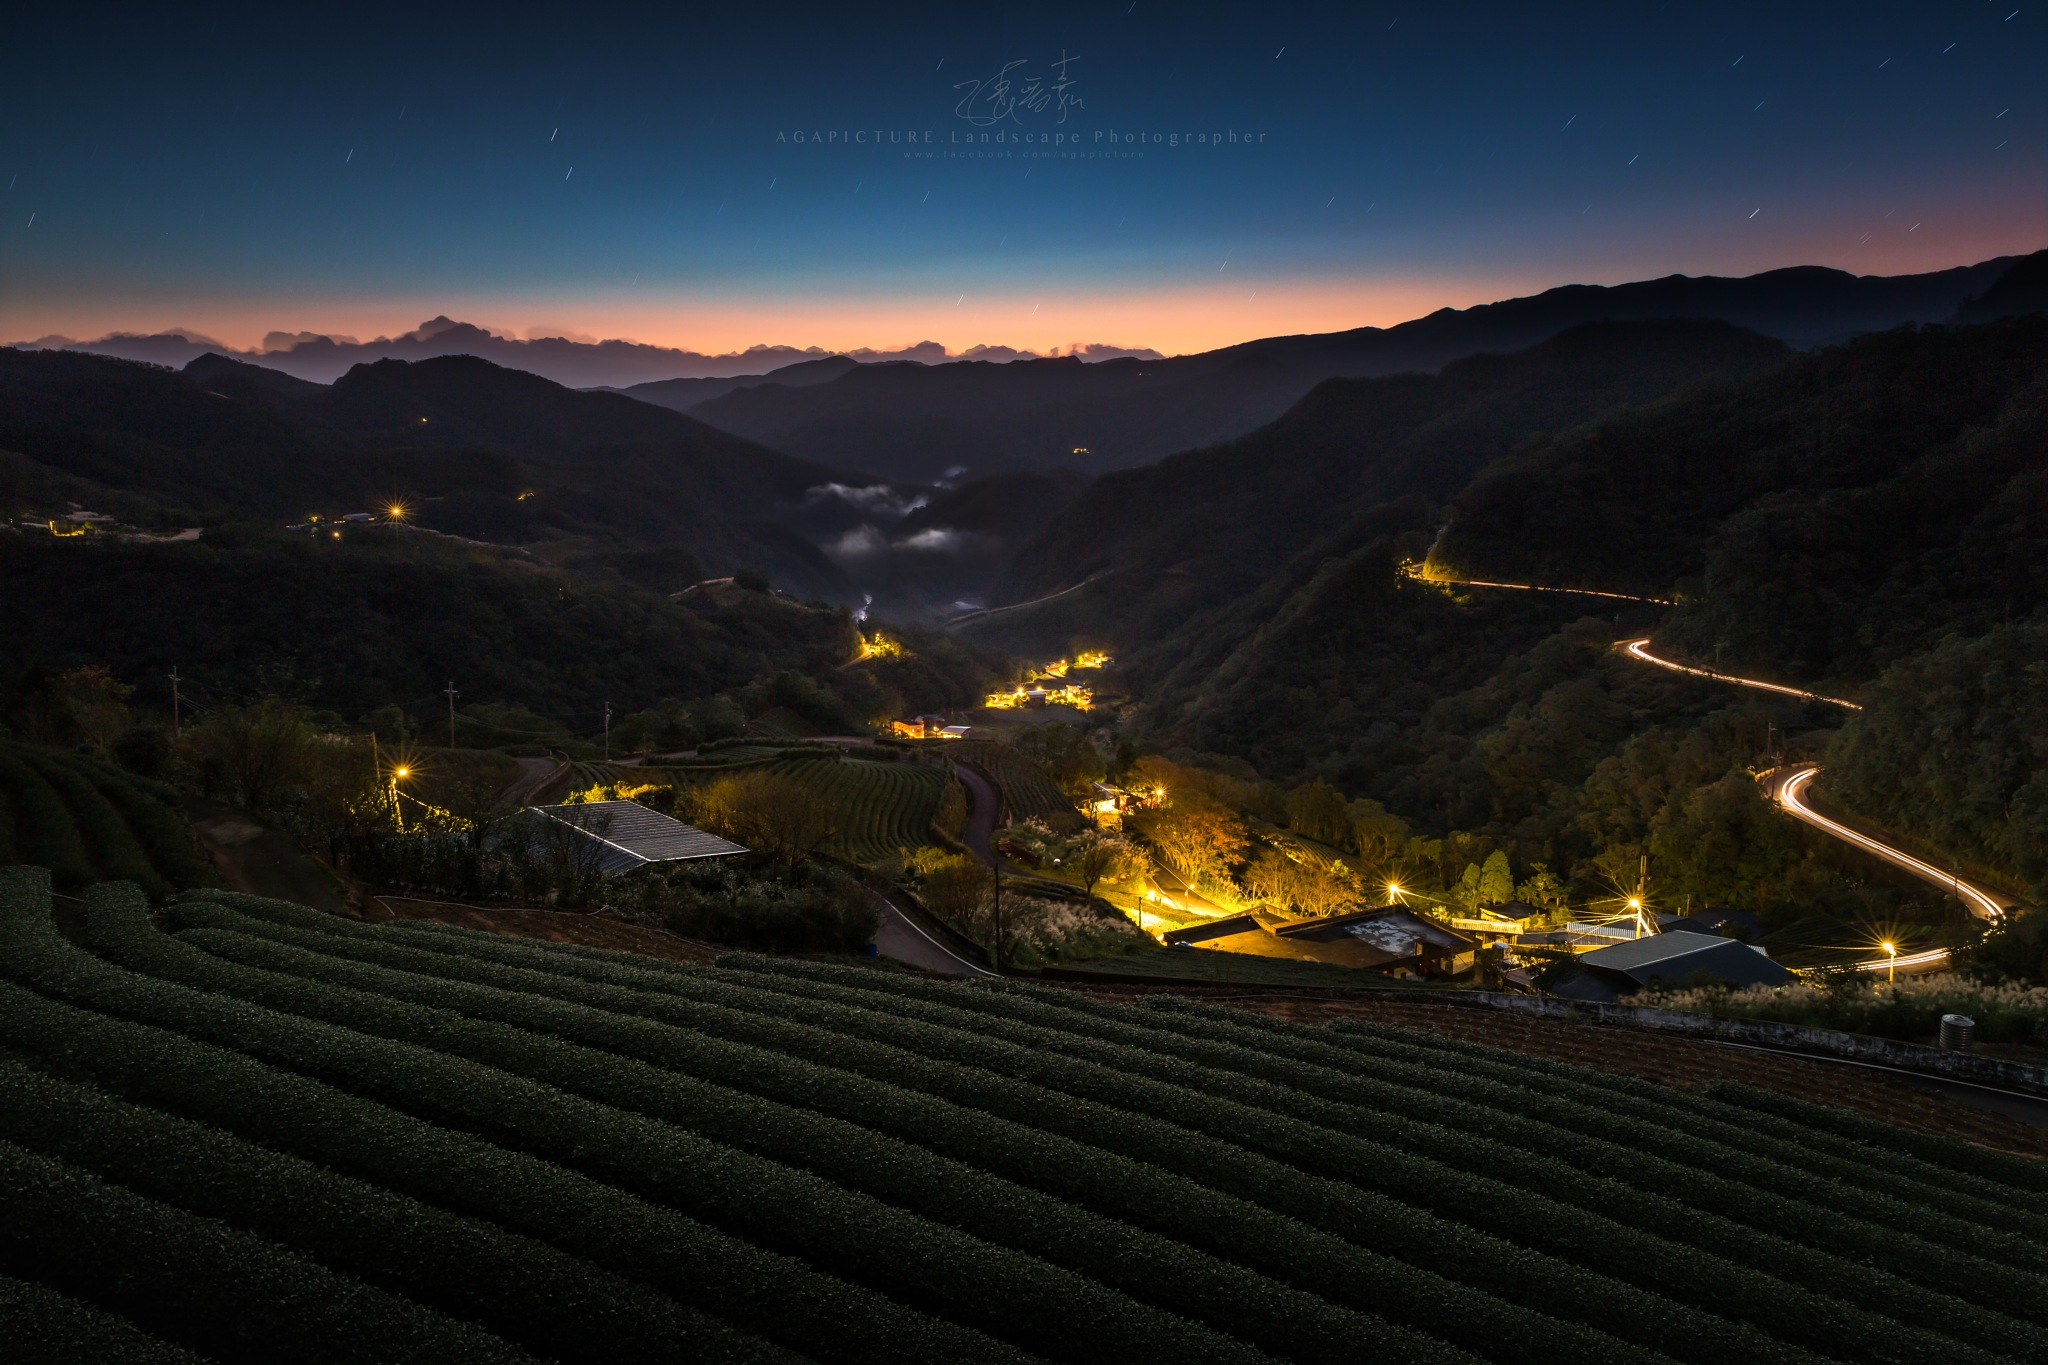 The tea garden before sunrise by agapicture